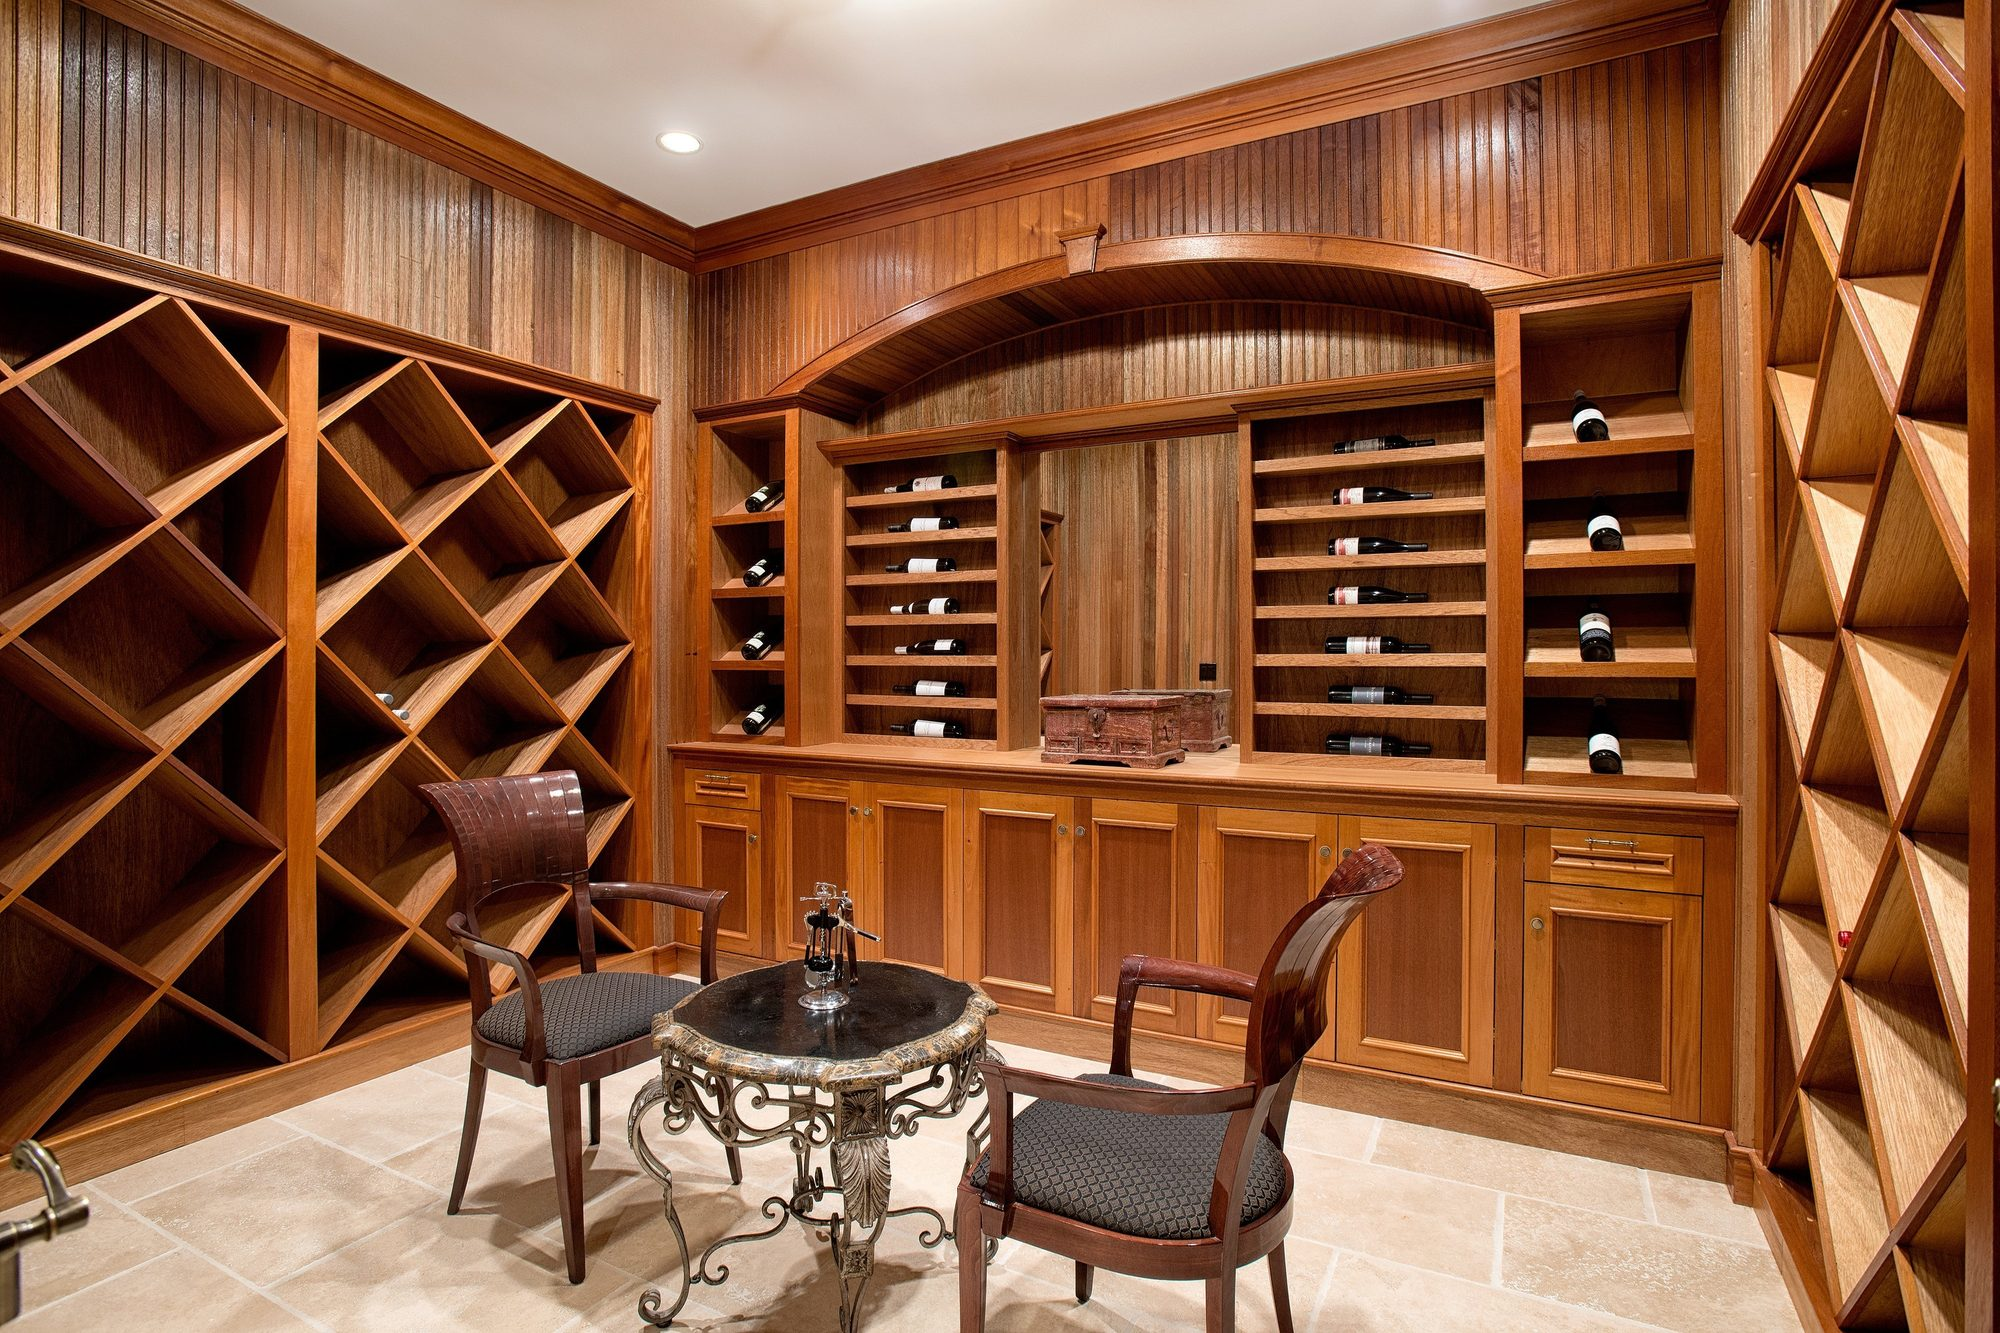 Beautiful wine room featuring custom built racks, shelves and drawers. Medium stained real wood. Stone tile floors. Vertical wall paneling.